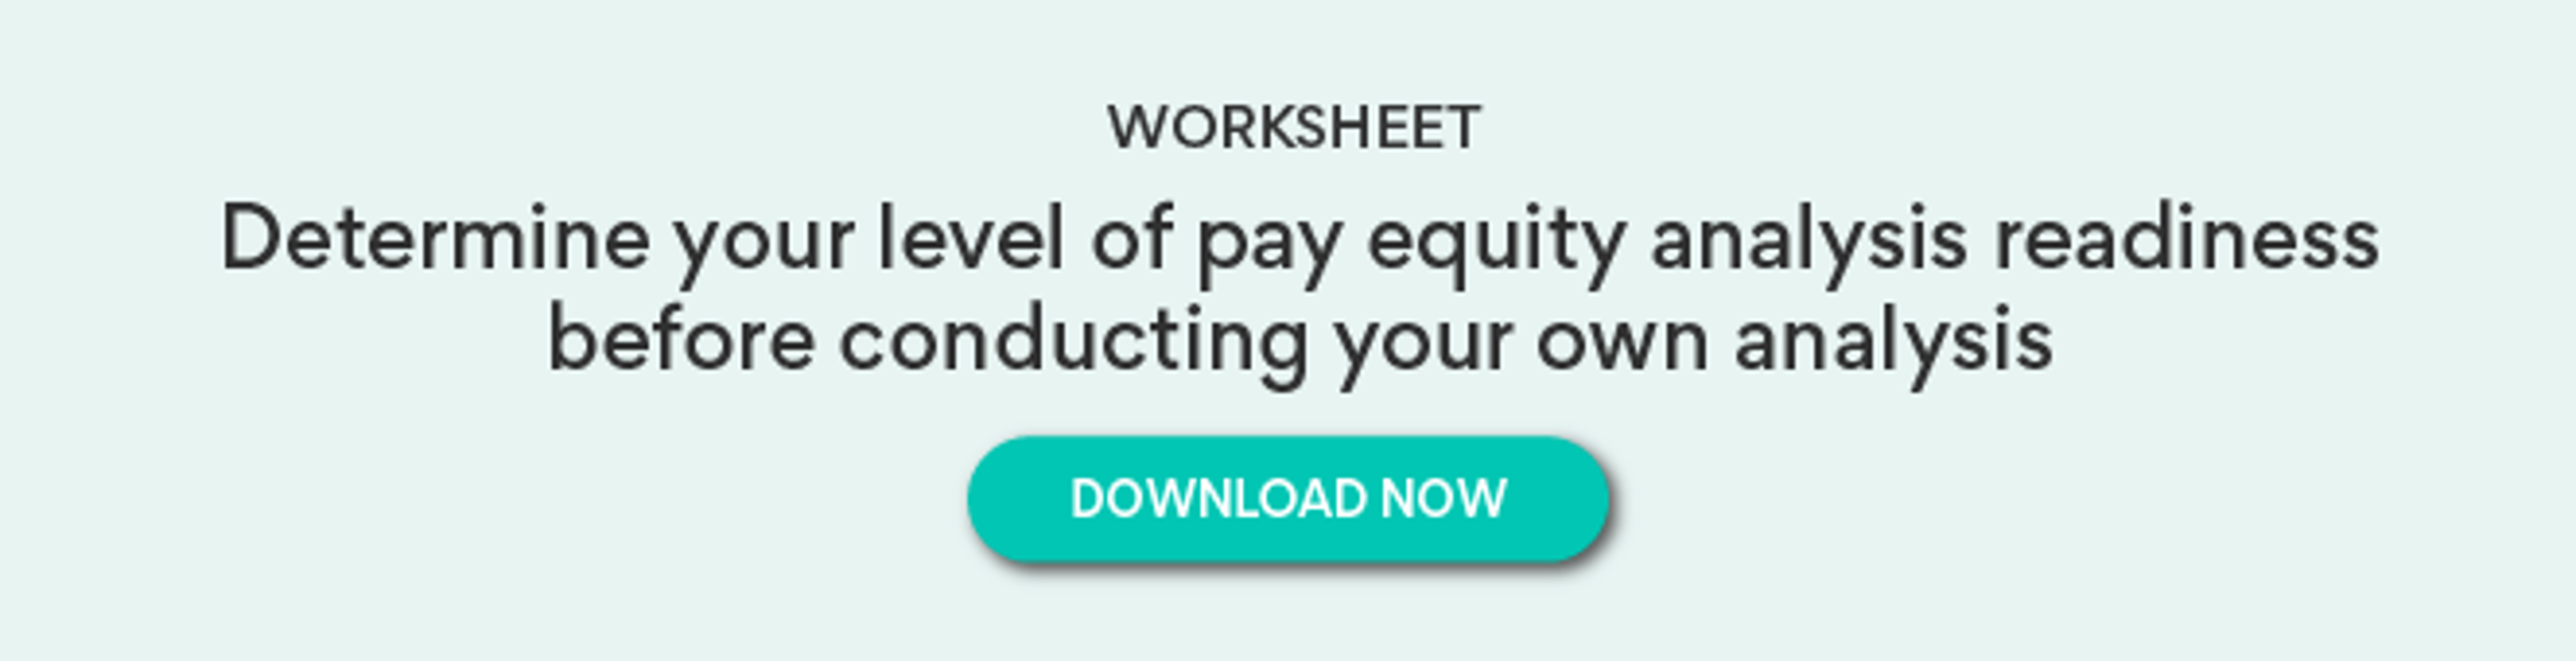 download the curo pay equity analysis readiness questions